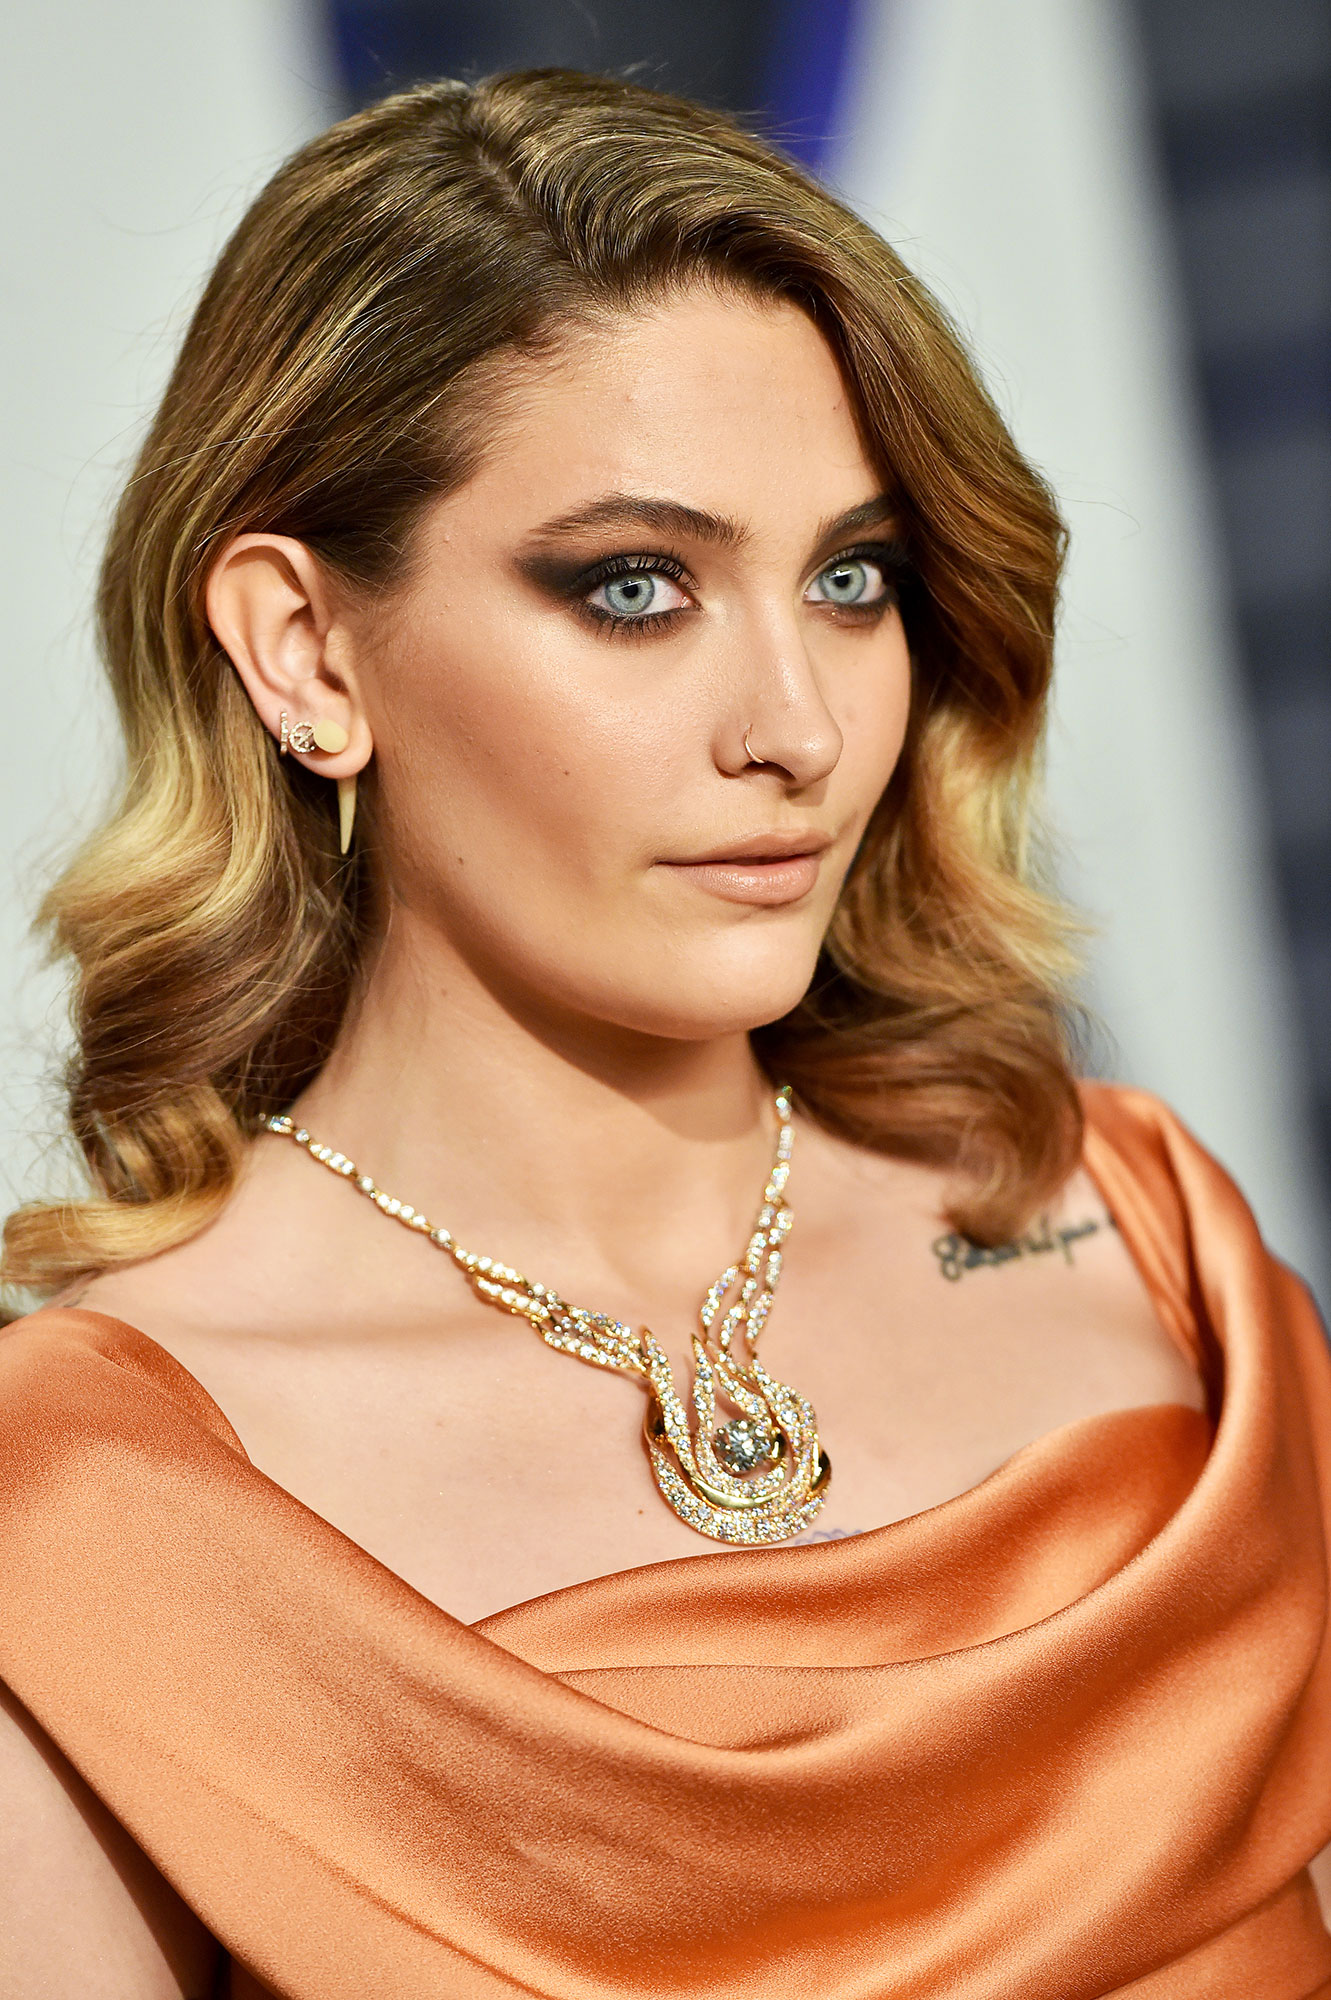 """Paris Jackson Celebs Are Here With All the Coachella Beauty Inspo You Need - Makeup artist Jo Baker used the black and rust shades in the limited-edition Charlotte Tilbury Icon eyeshadow palette to create this winged """"sooty smolder"""" look for the Coachella queen at the 2019 Vanity Fair Oscar Party."""